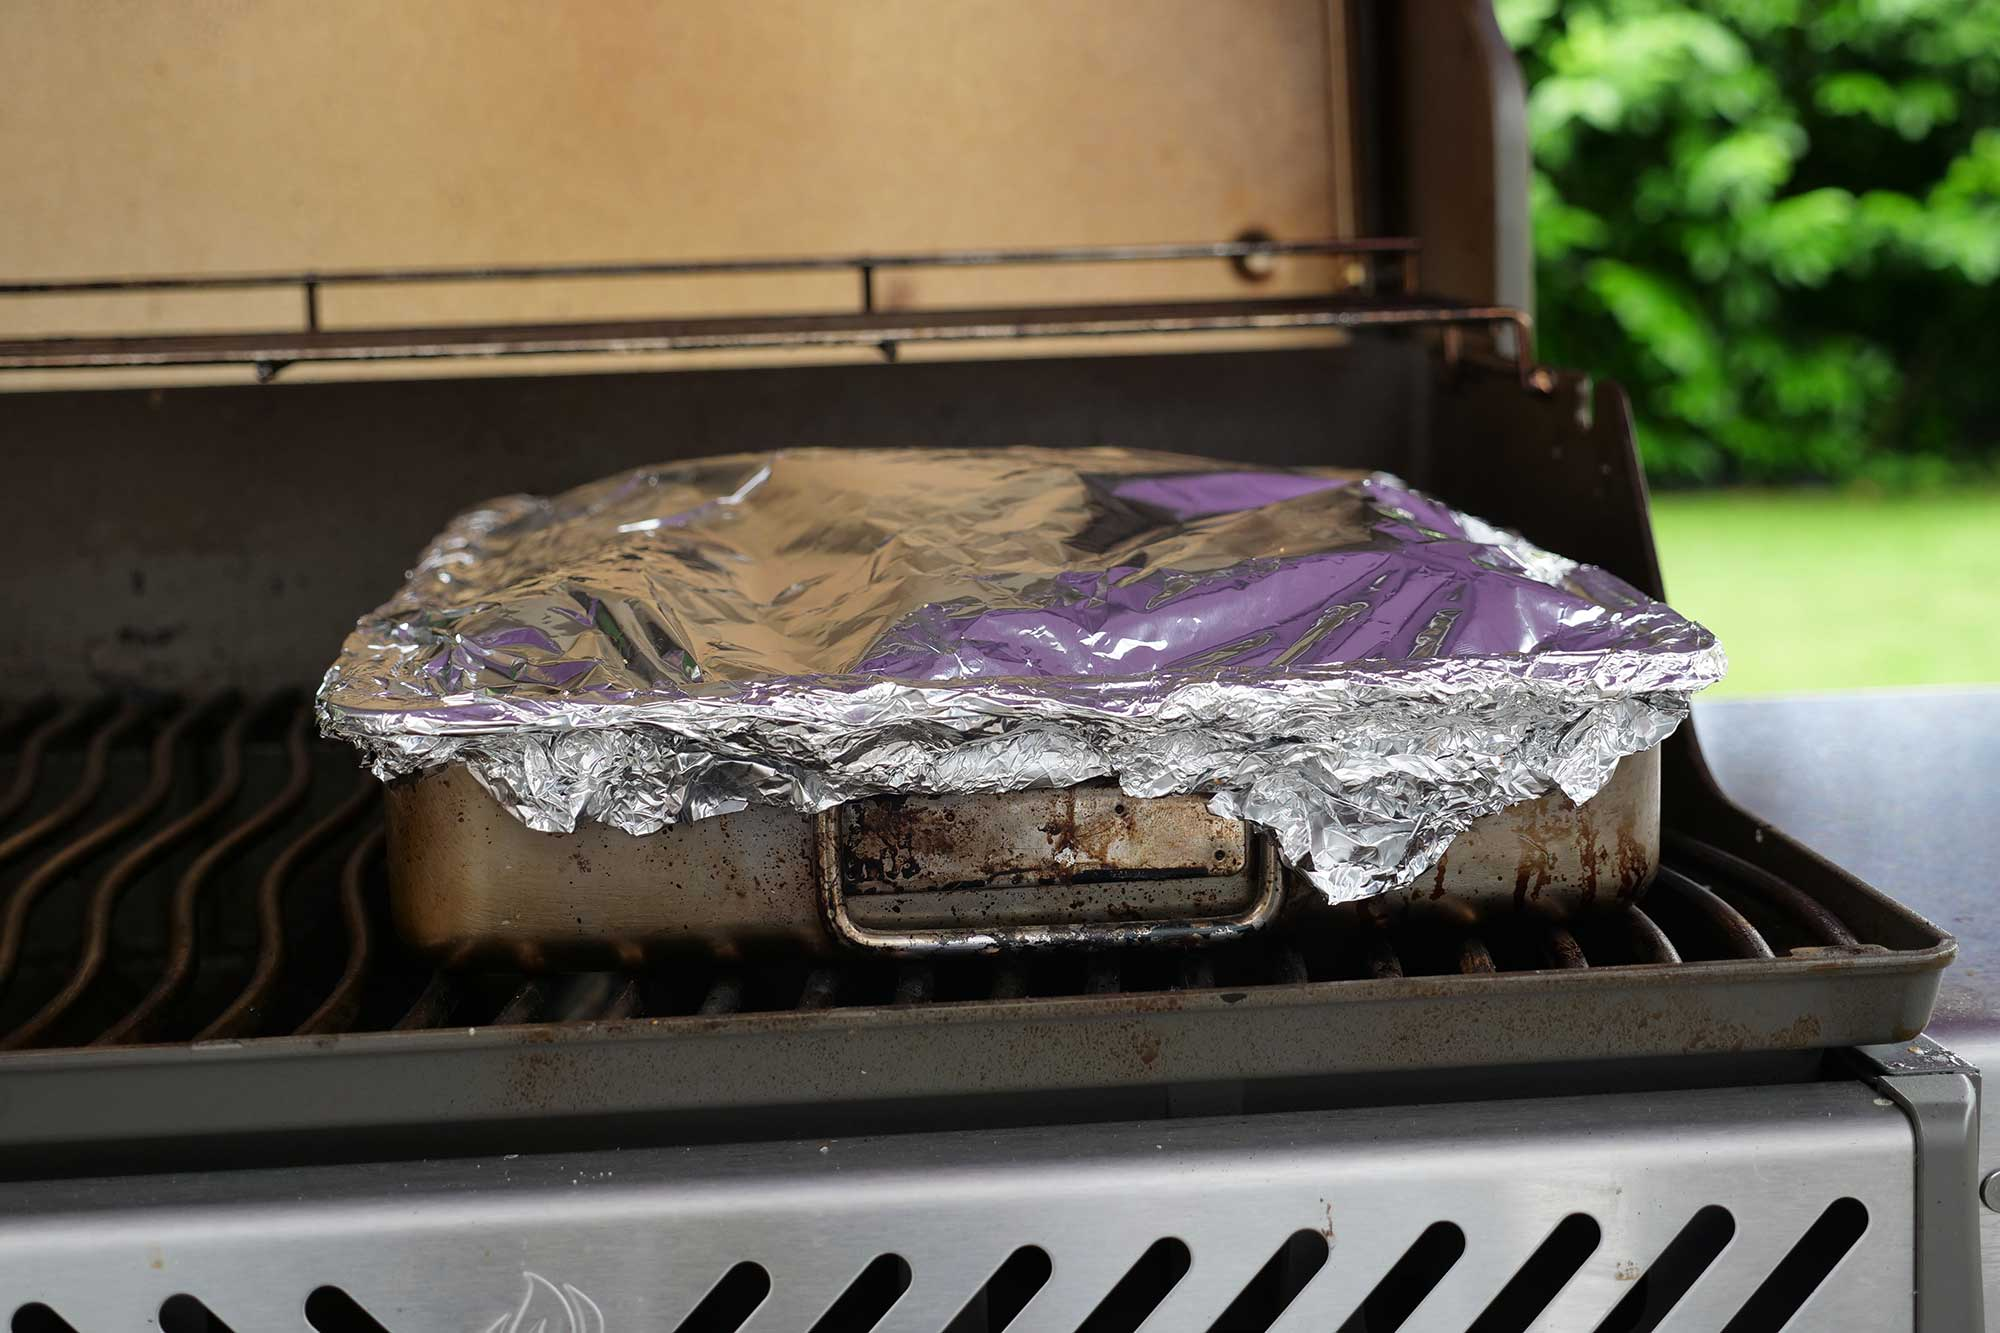 Sizzle Brothers Spareribs Vom Gasgrill : Spareribs vom grill daempfen sizzle brothers bbq gerichte grill